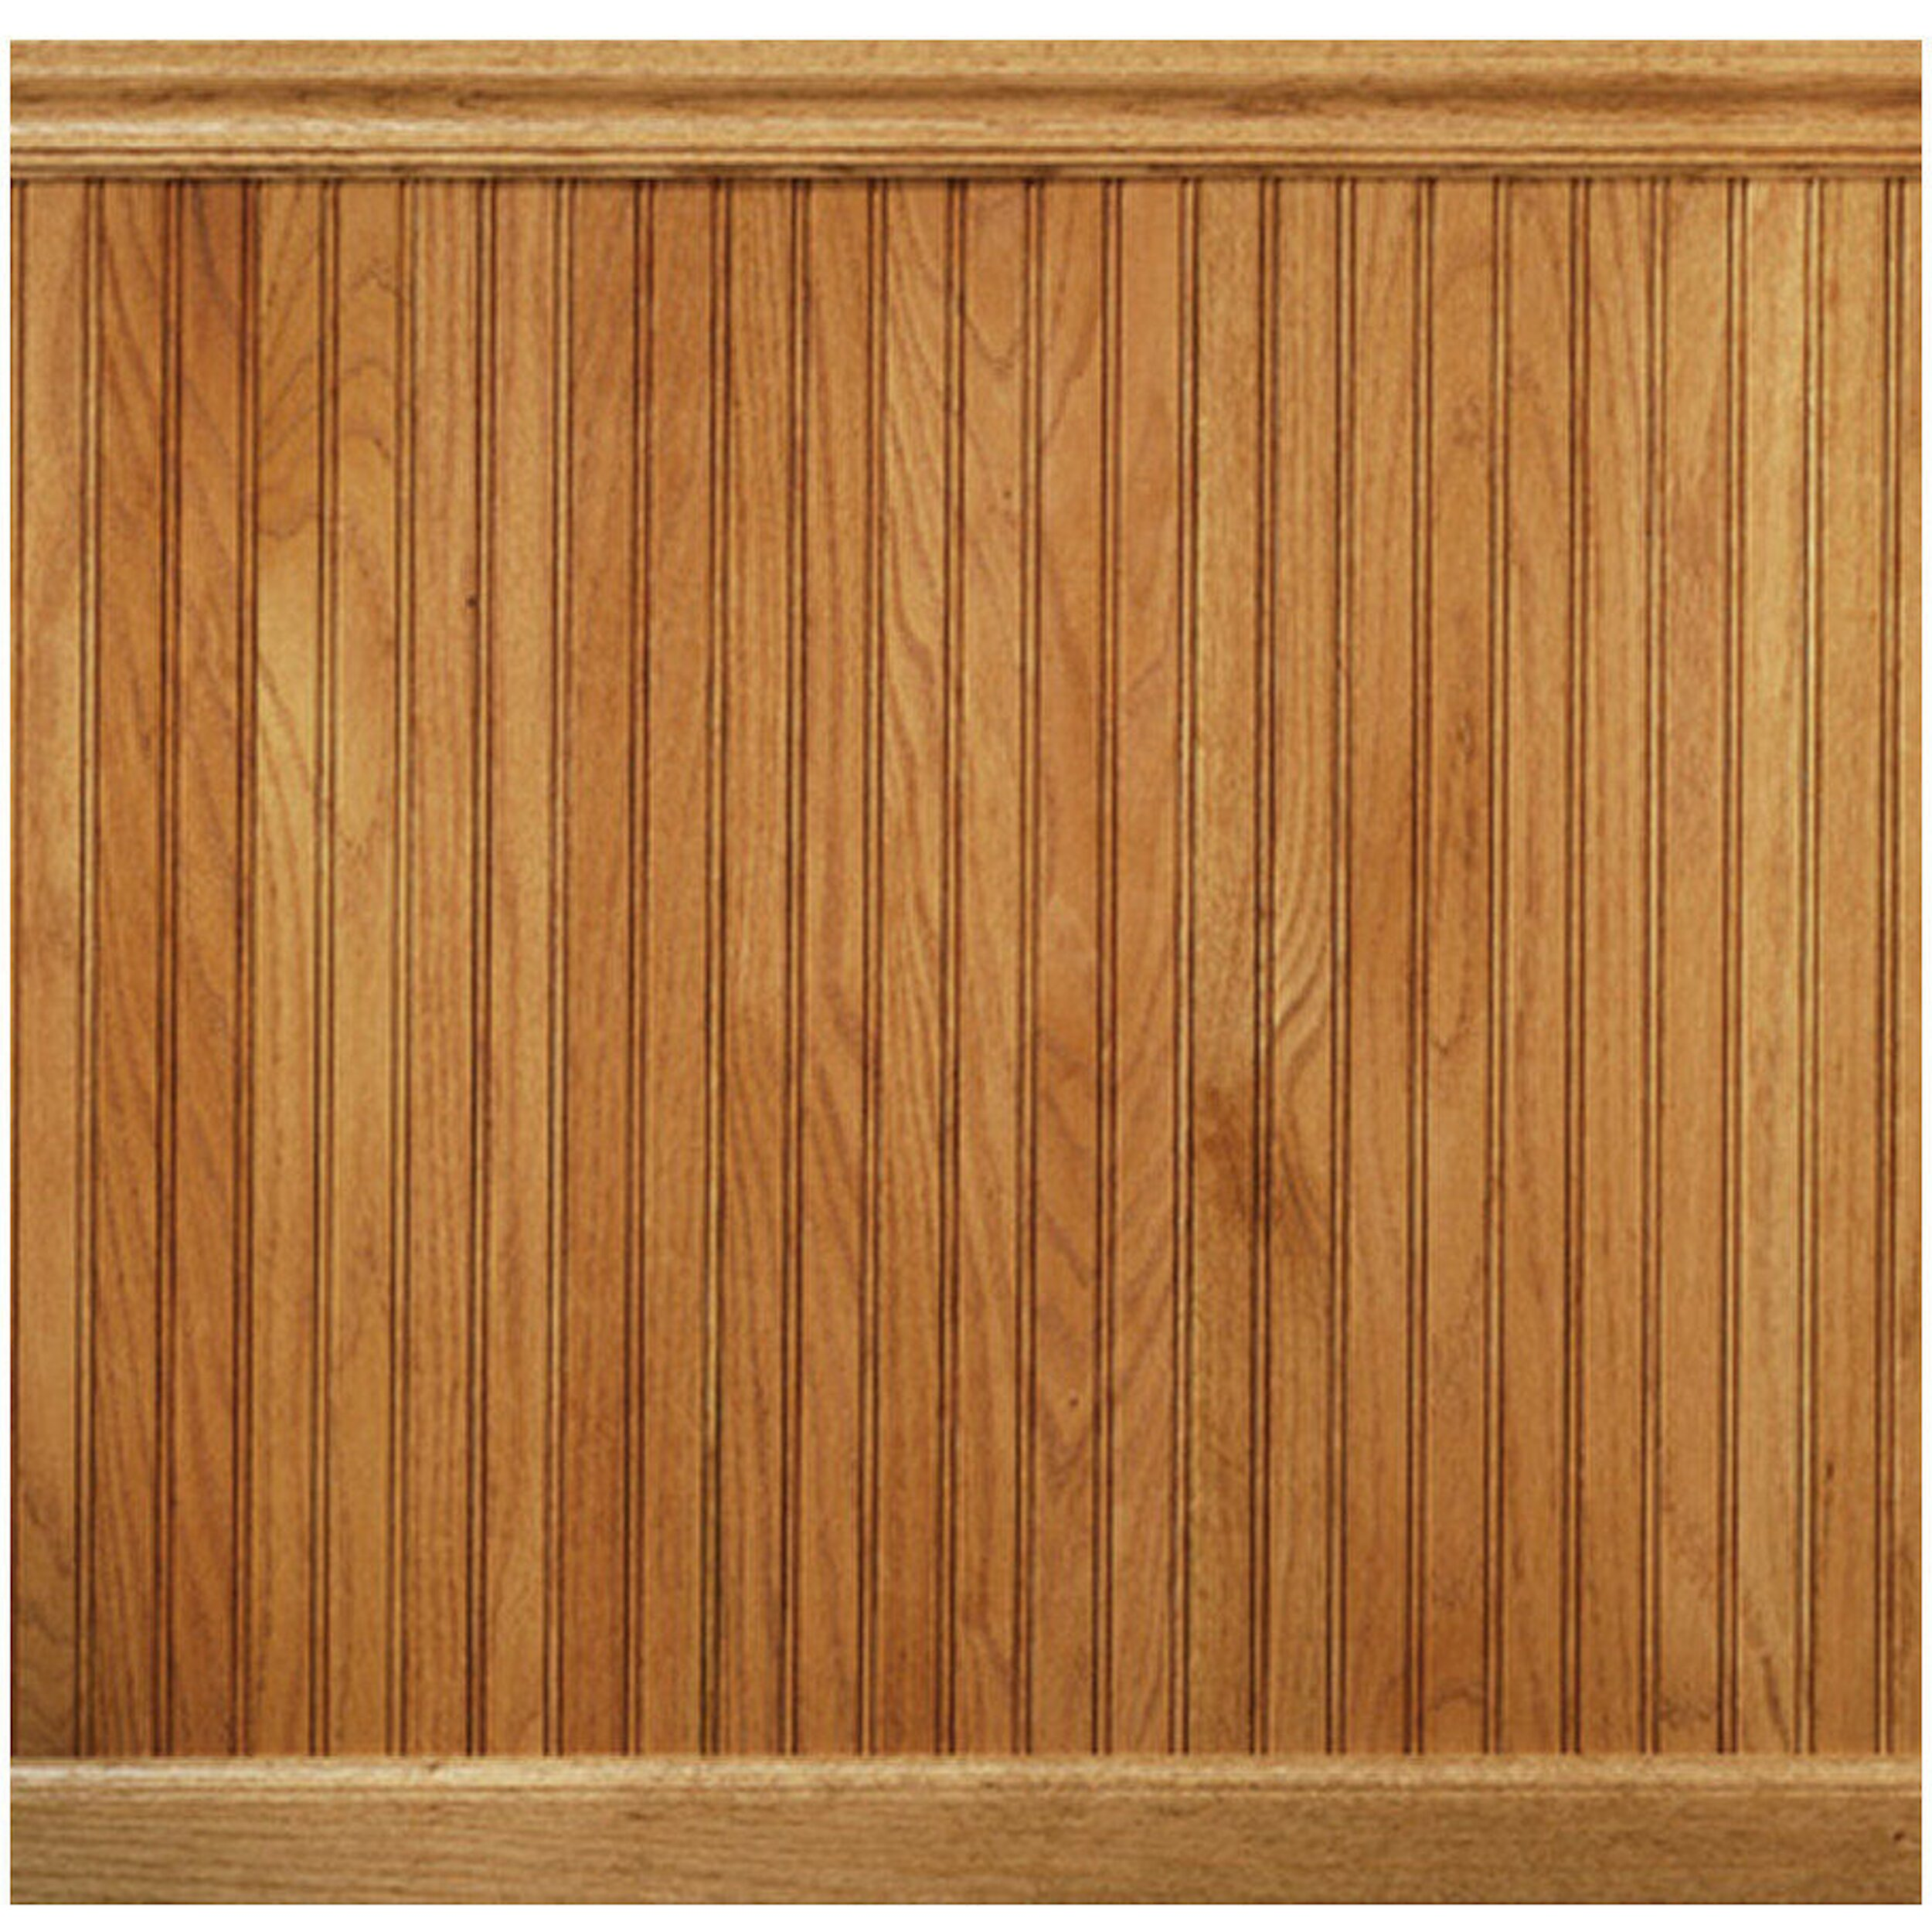 Manor house 96 solid wood wall paneling in red oak reviews wayfair for Tongue and groove interior wood paneling